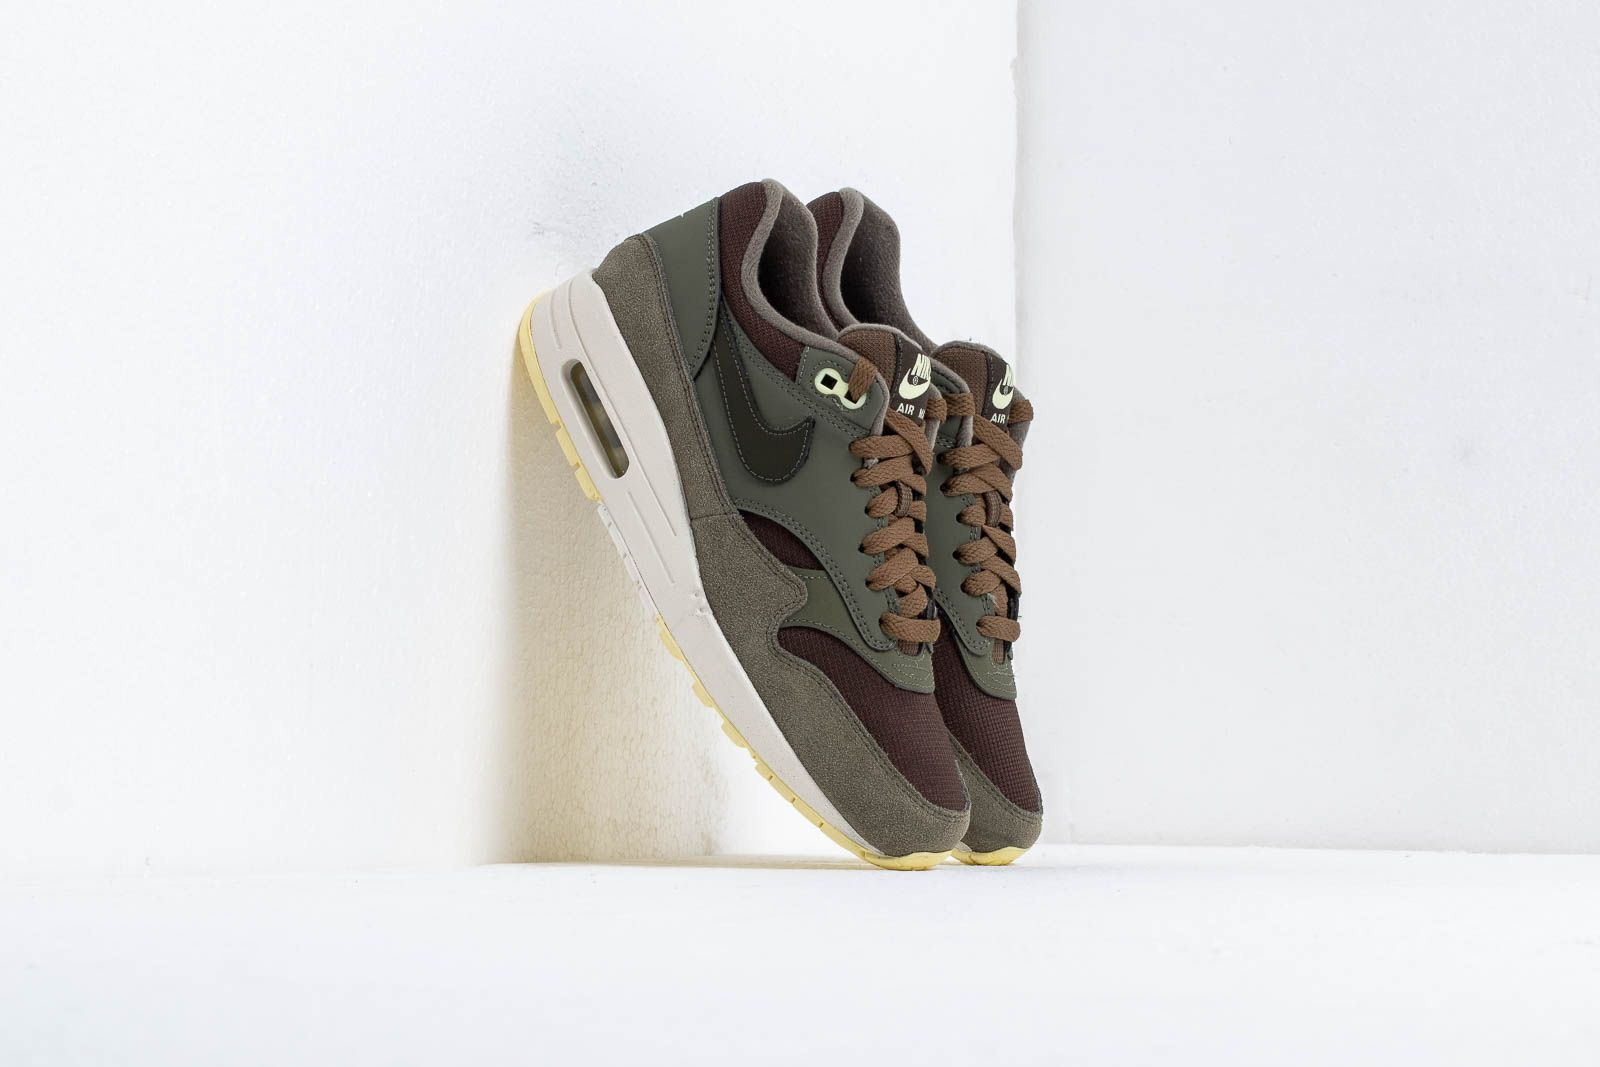 Women's shoes Nike Wmns Air Max 1 Sequoia/ Sequoia-Medium Olive